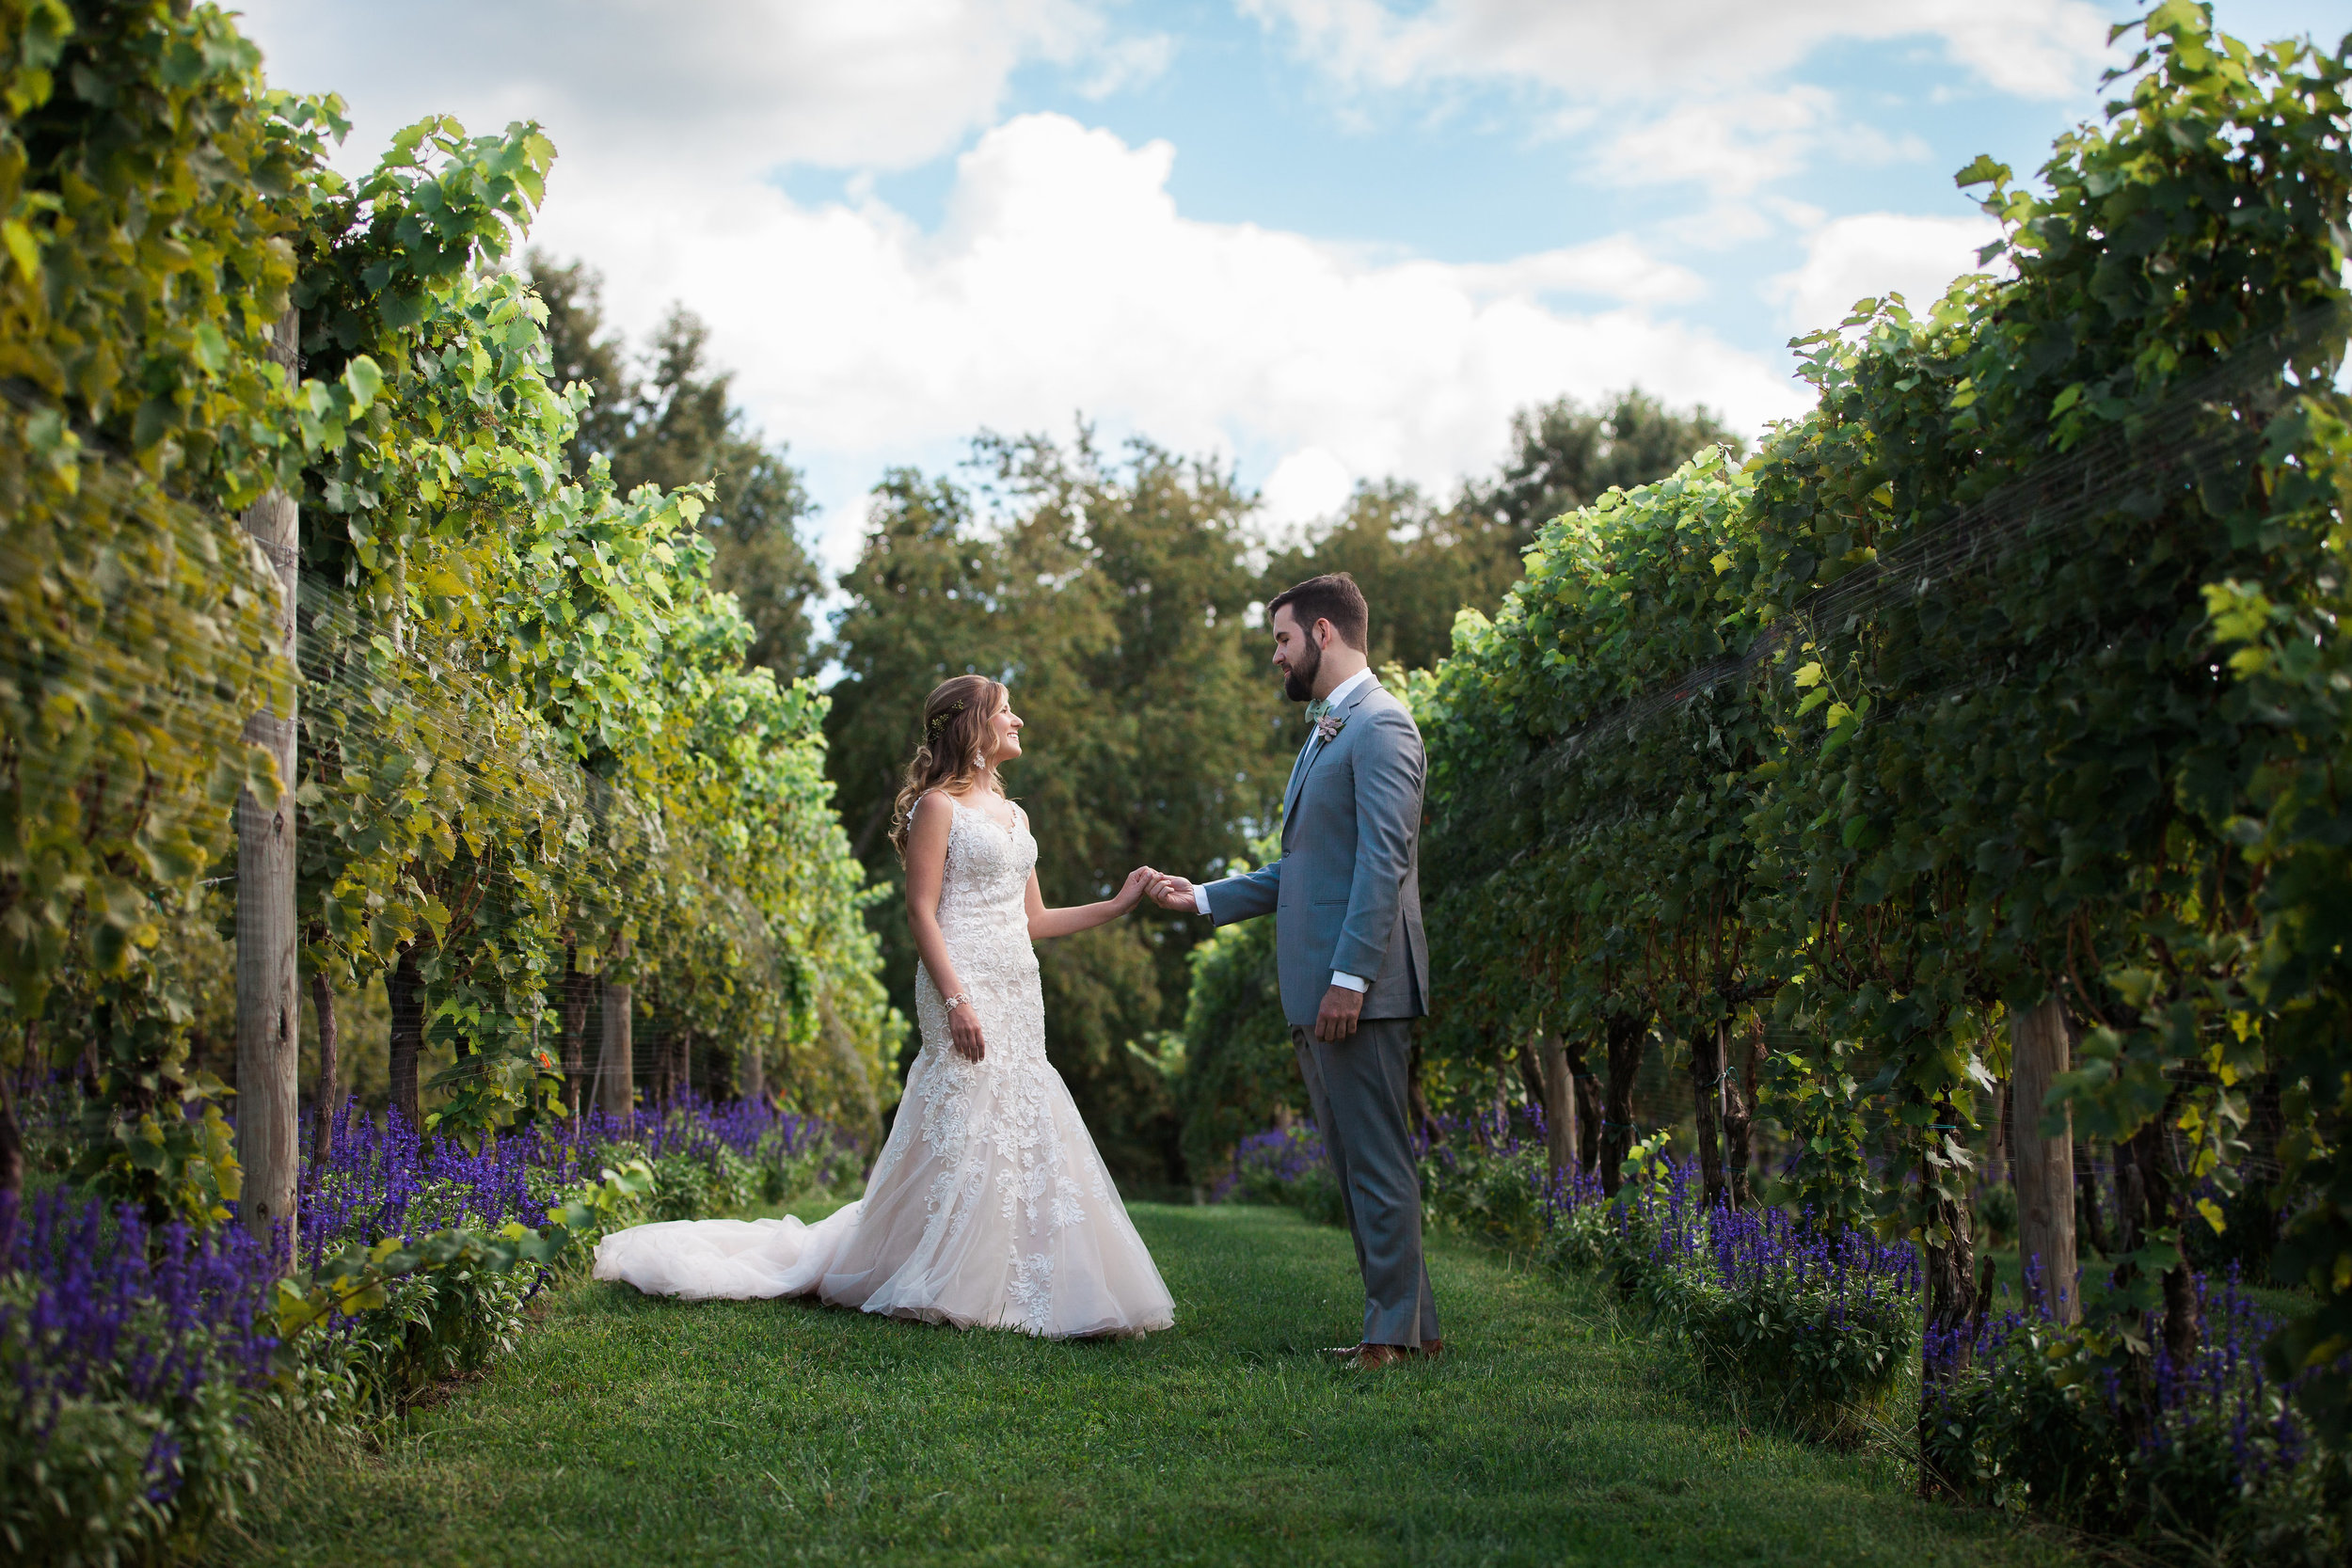 The One Moment Events - Bride and Groom in Vineyard.jpg